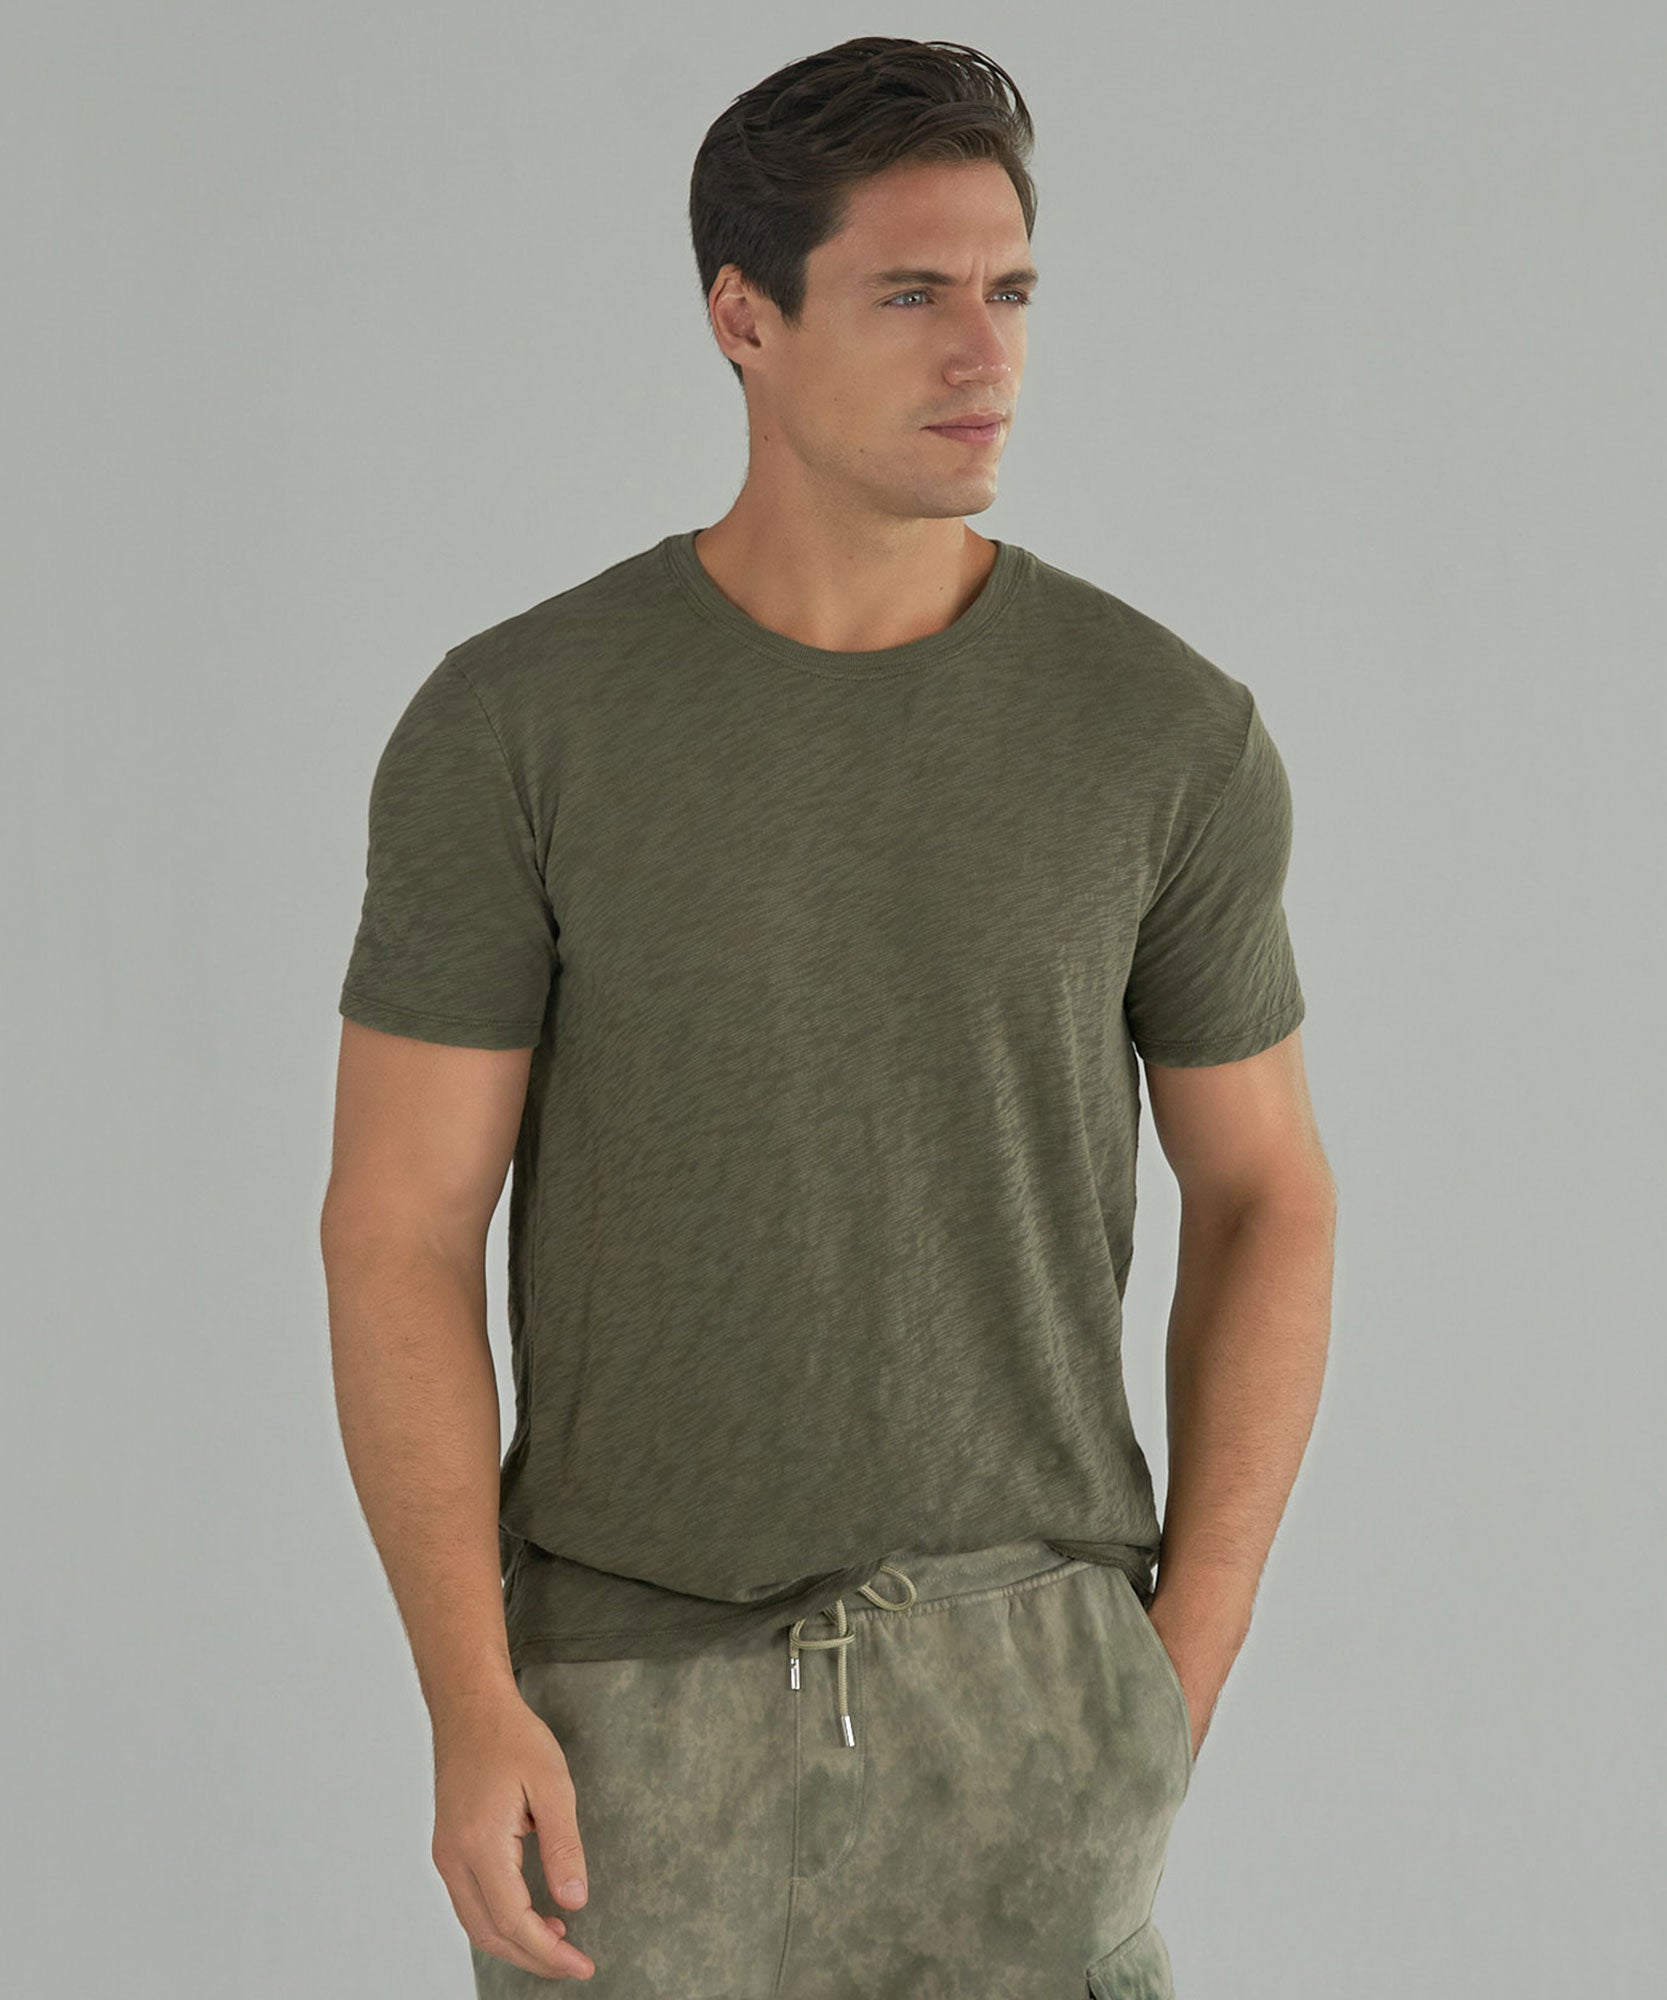 Army Slub Jersey Crew Neck Tee - Men's Short Sleeve T-Shirt by ATM Anthony Thomas Melillo